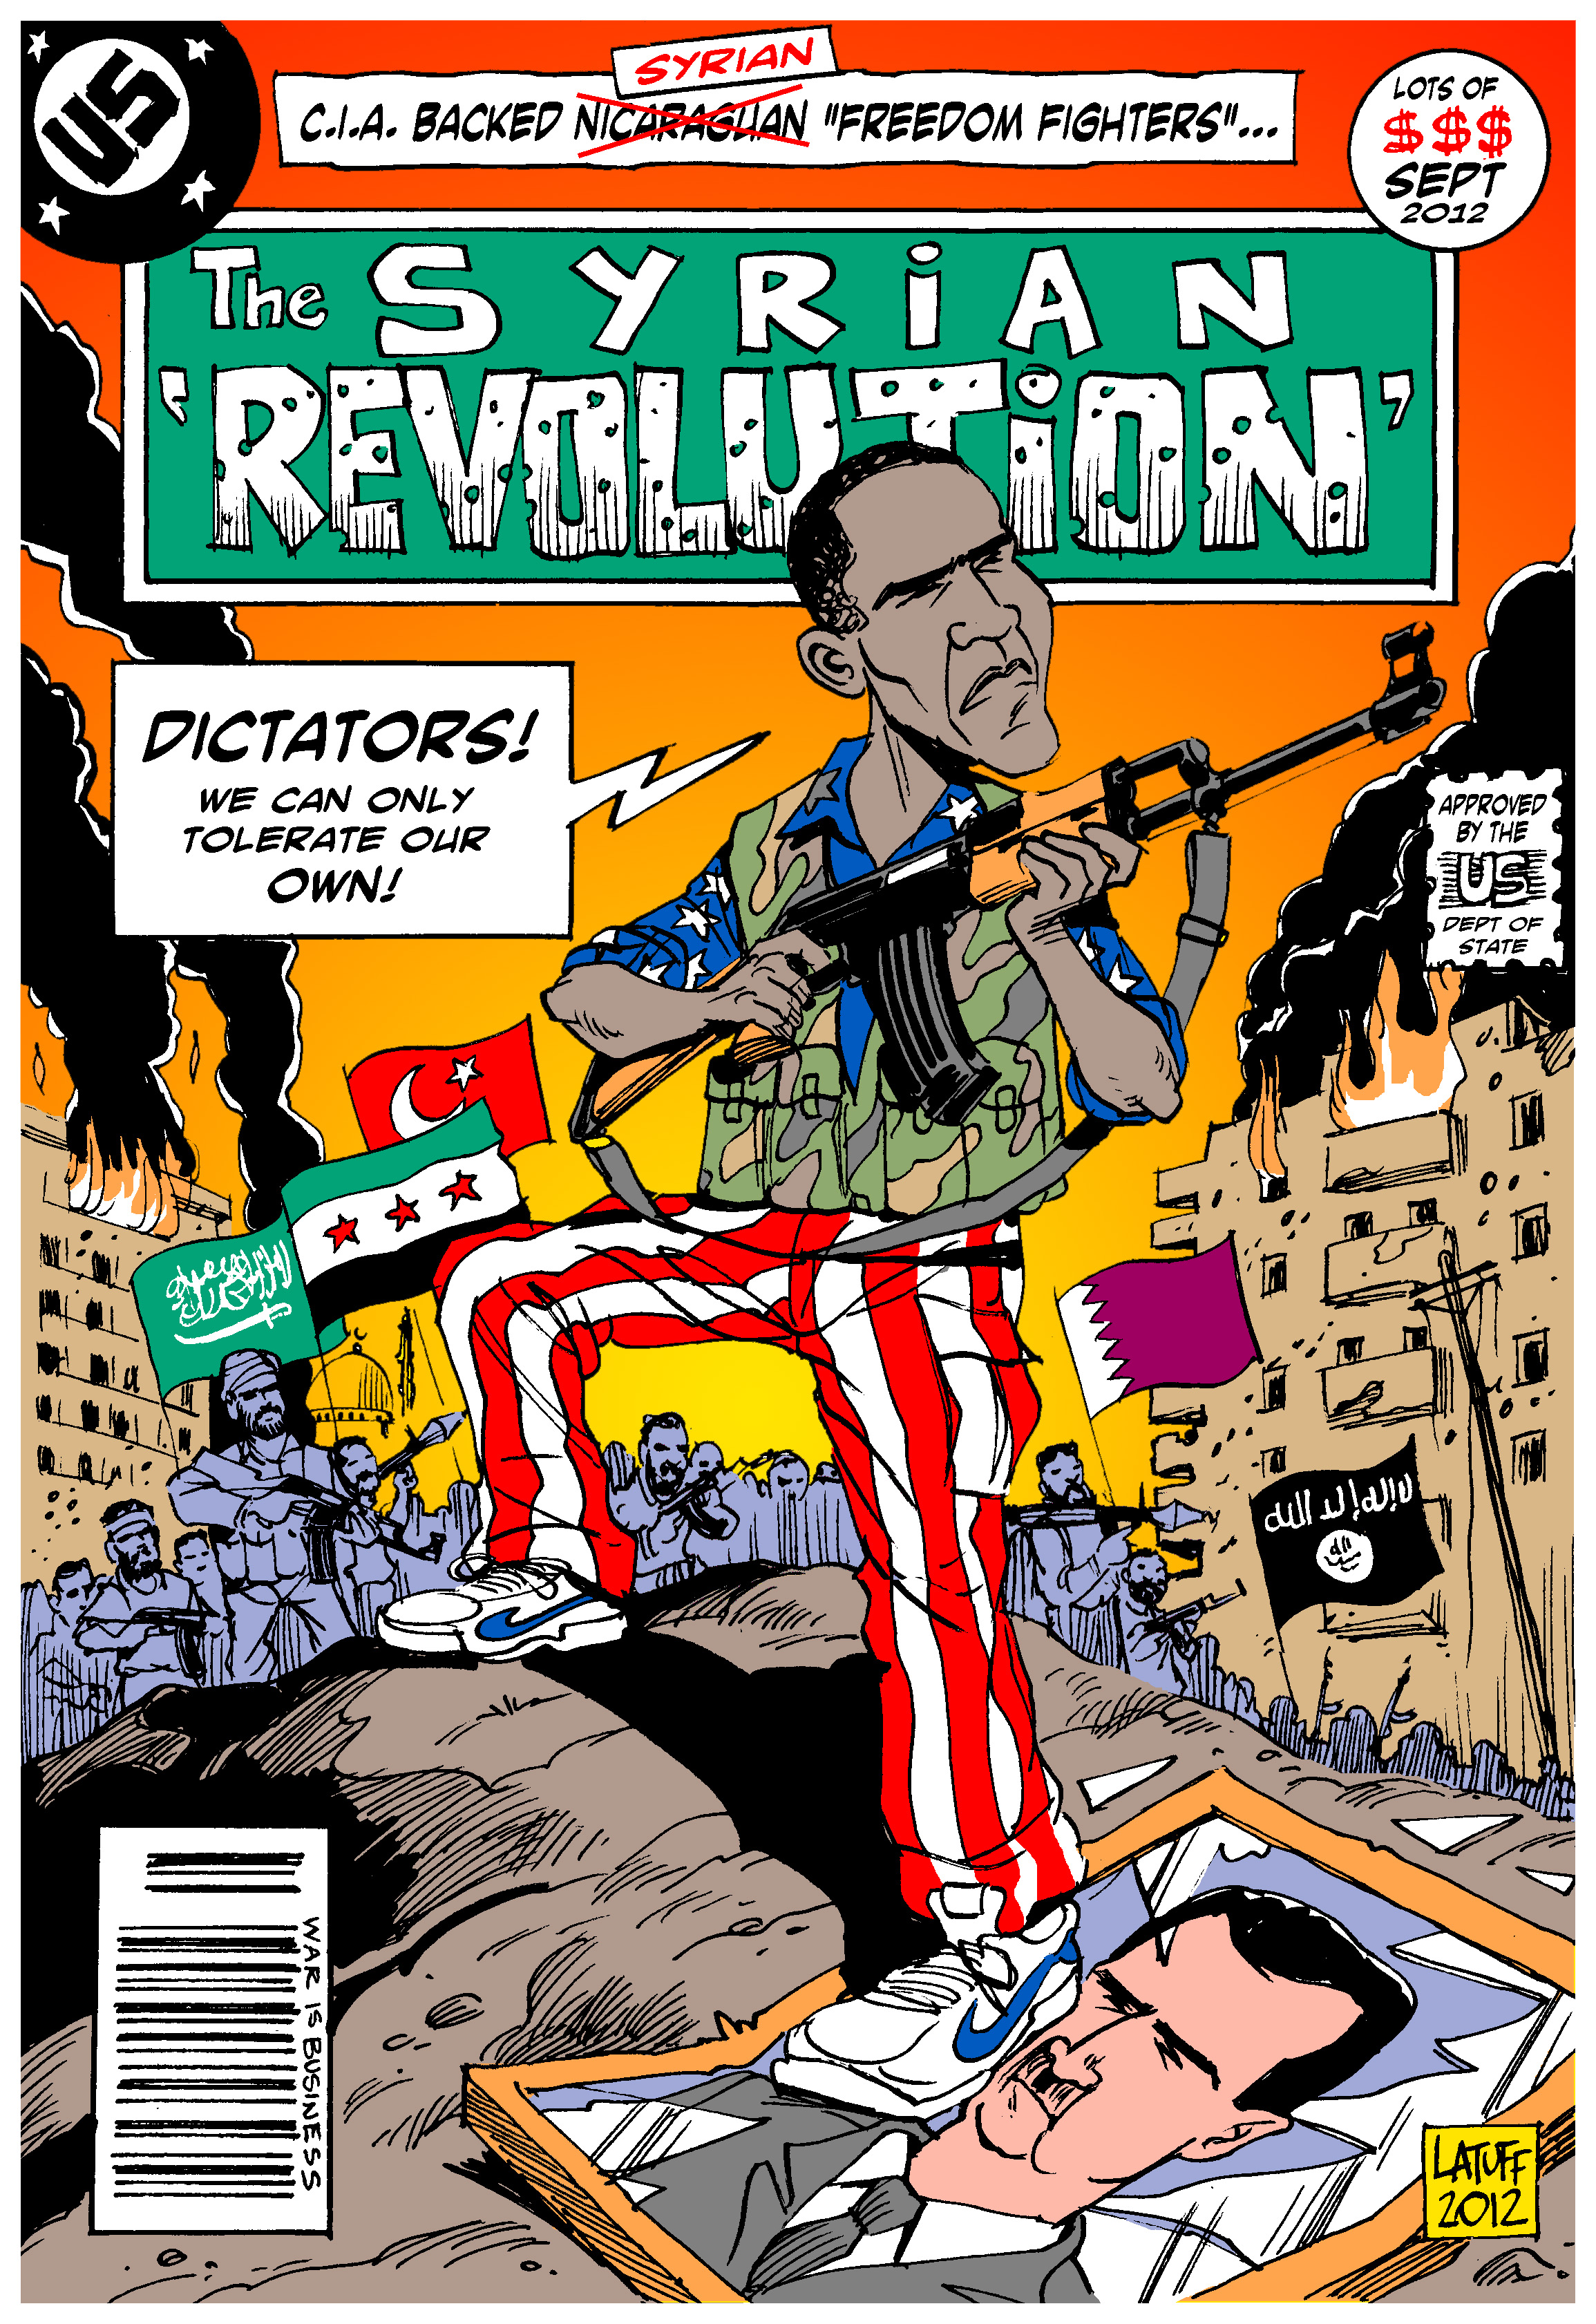 syrian revolution The franco-syrian war took place during 1920, between the hashemite rulers of the newly established arab kingdom of syria and france during a series of engagements, which climaxed in the battle of maysalun, french forces defeated the rebel forces of the hashemite monarch king faisal, and his supporters, entering damascus on july 24, 1920.